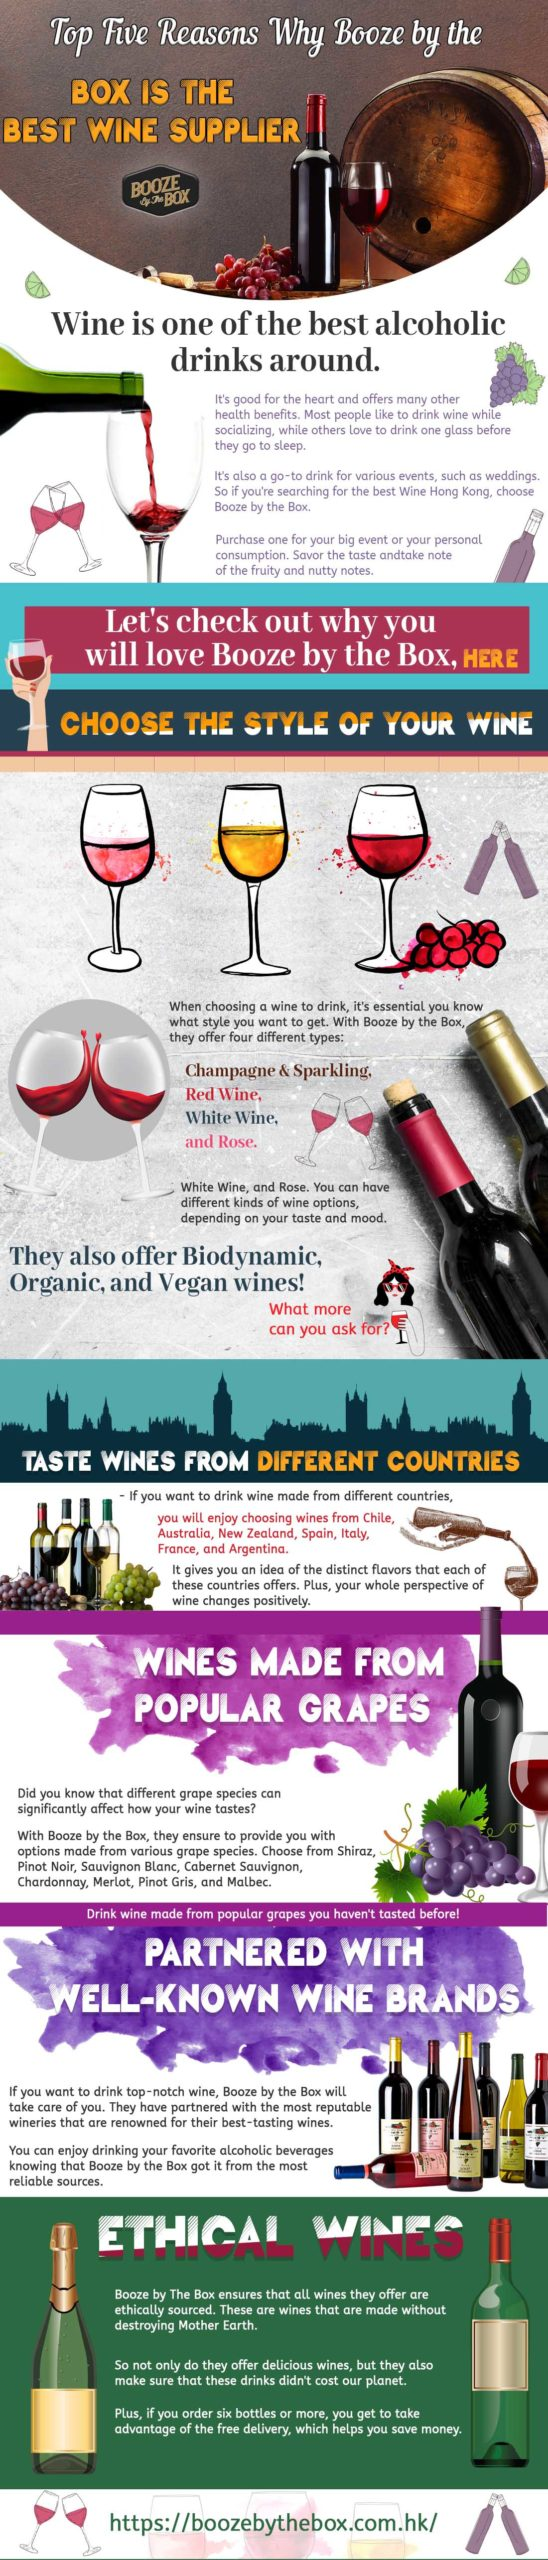 How to Get the Most Bang for Your Buck When Choosing a Bottle of Wine